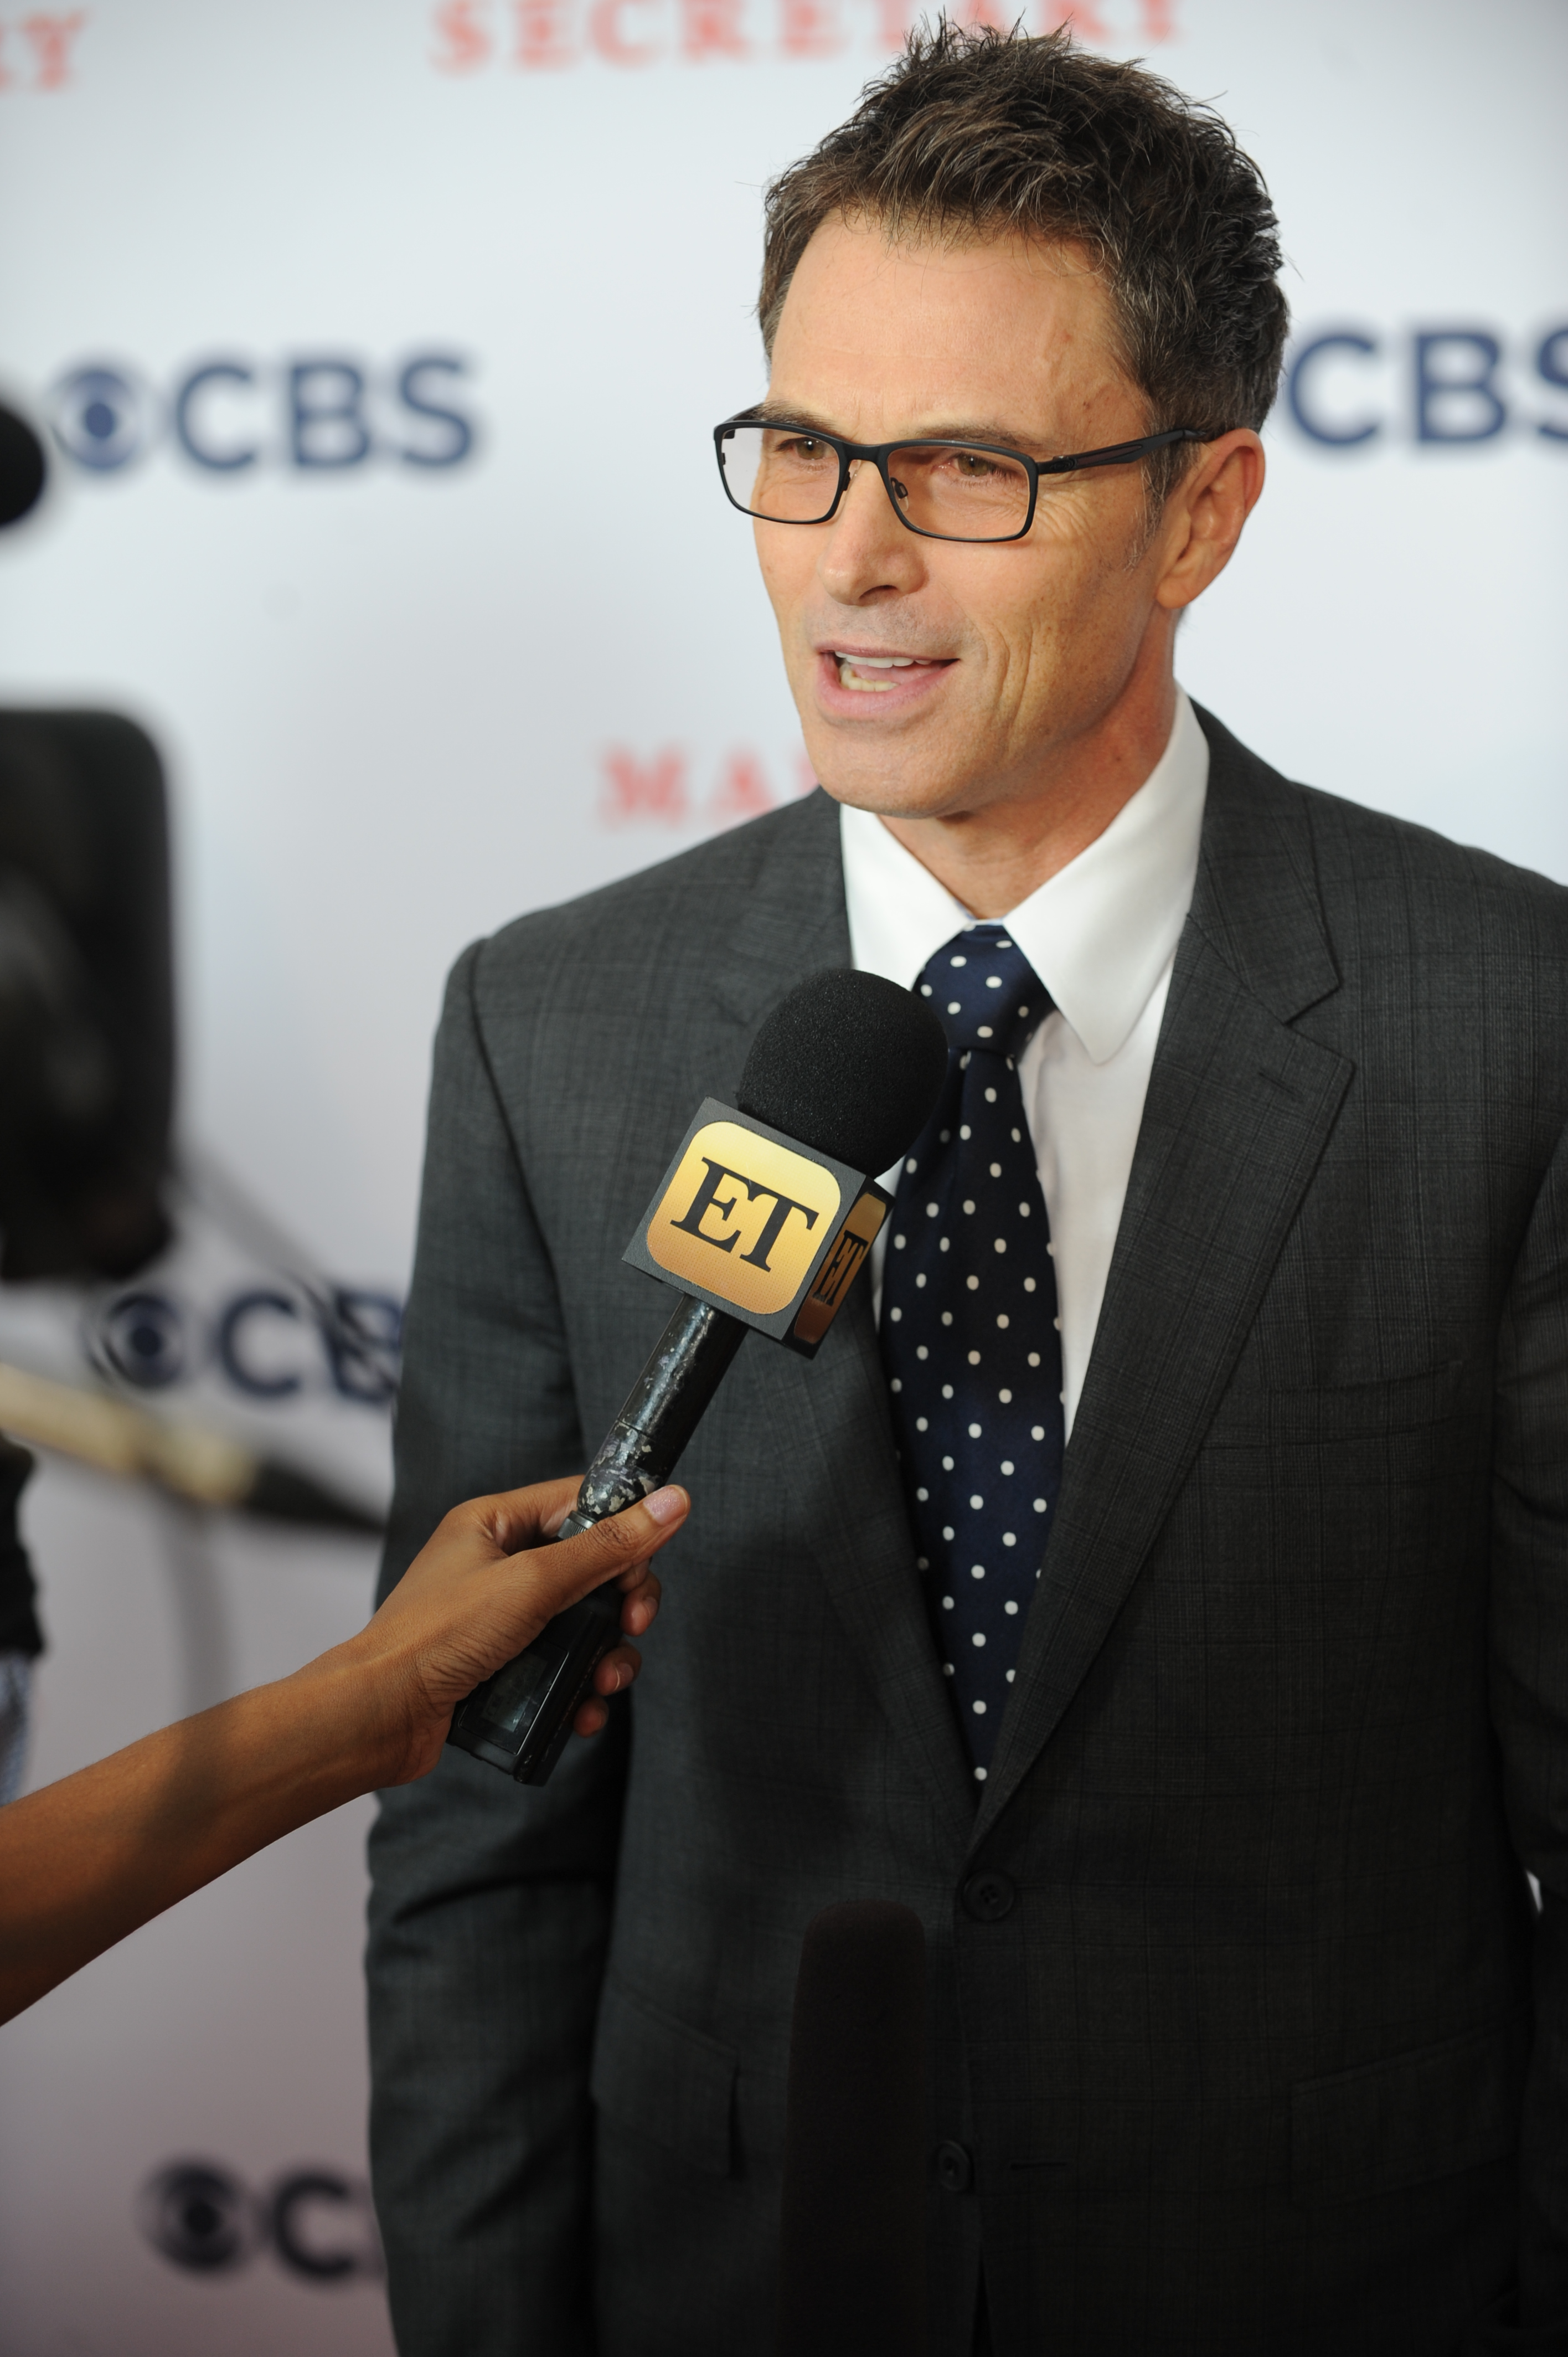 16. Tim Daly serves as the president of The Creative Coalition, a non-profit, non-partisan, social and political advocacy organization in   which members of the entertainment community promote issues of public importance.